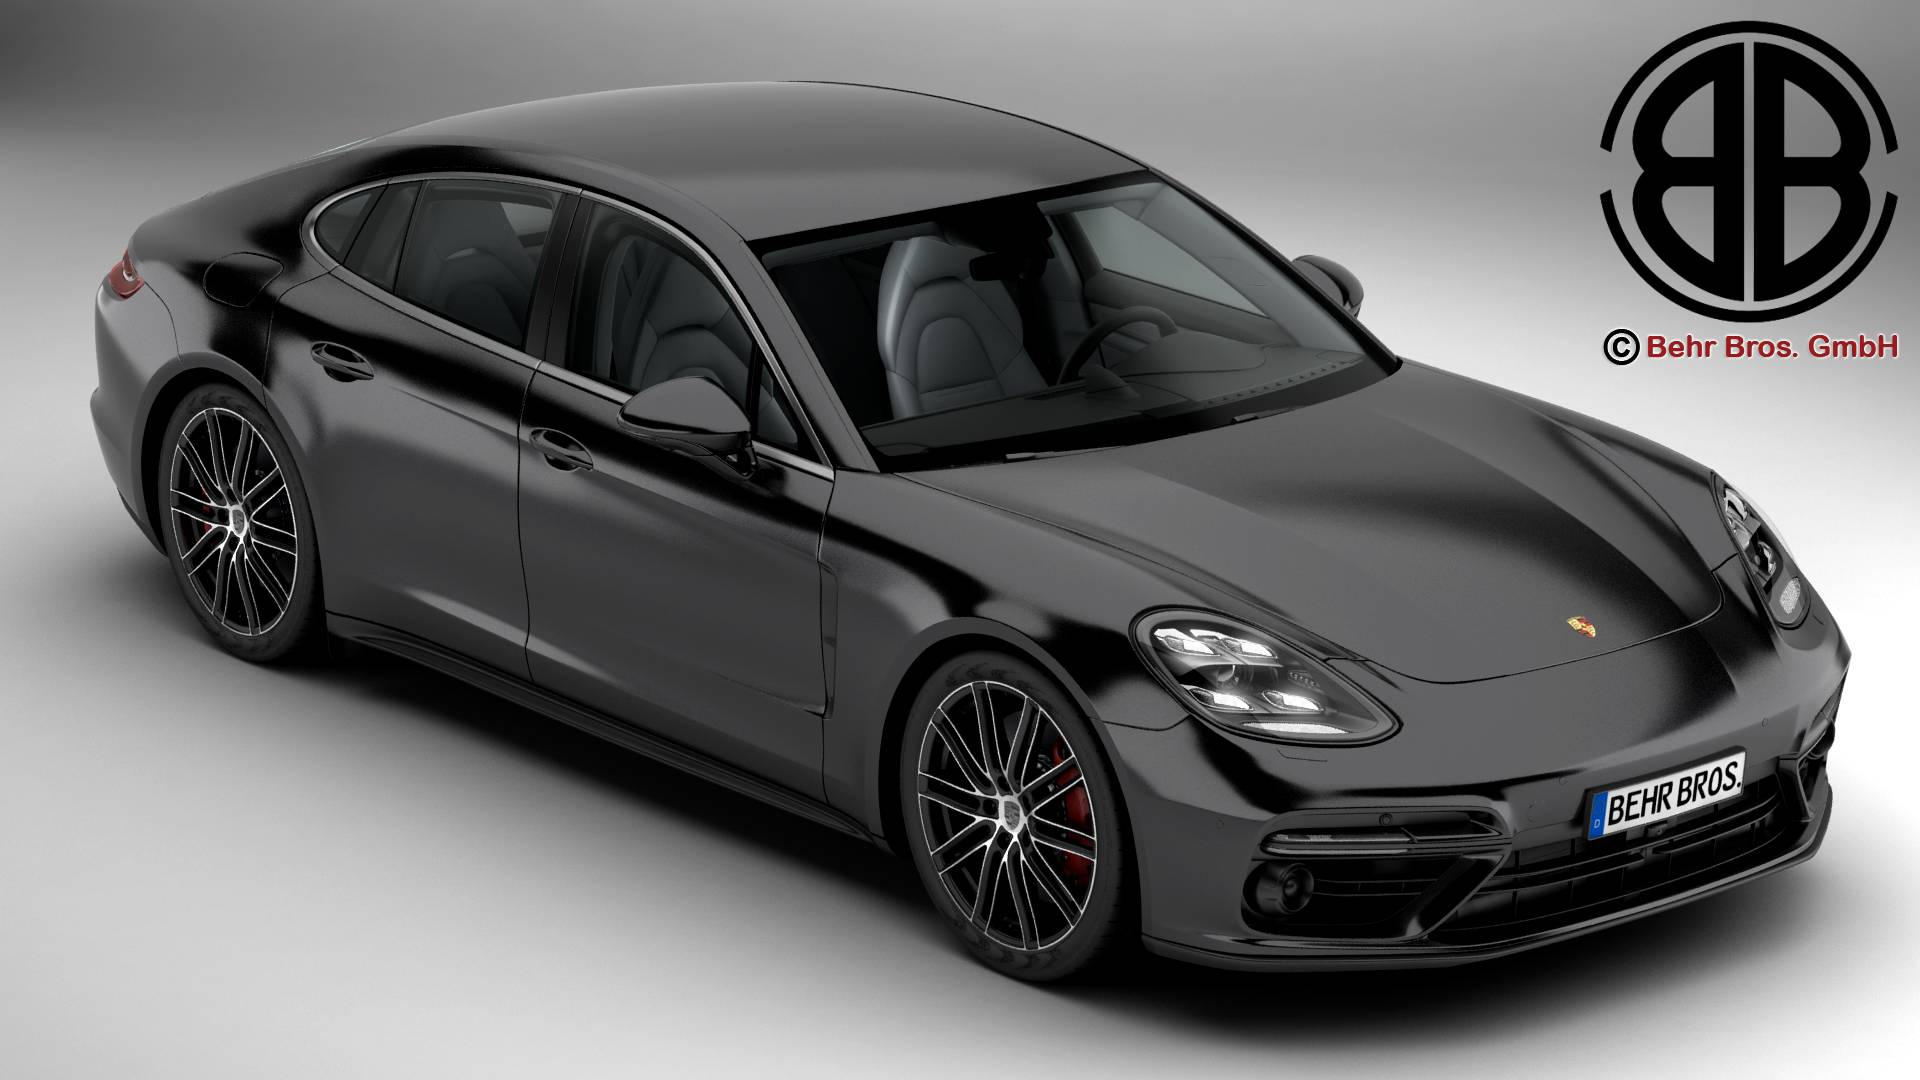 porsche panamera turbo 2017 3d model 3ds max fbx c4d le do thoil 220822